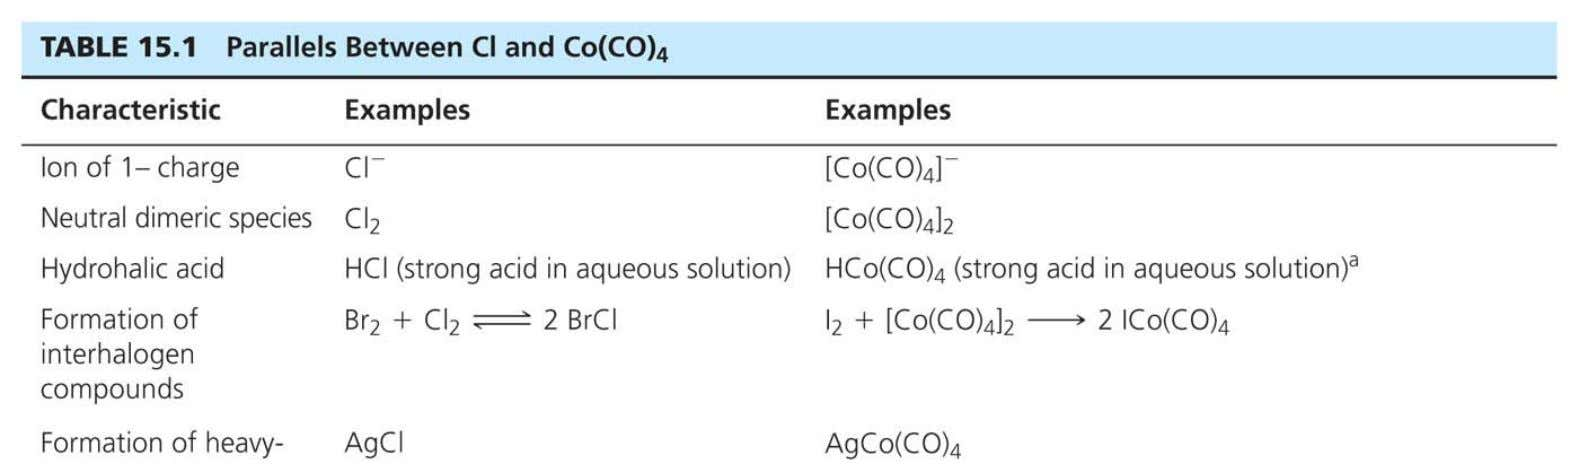 15-1 Main group parallels with binary carbonyl complexes